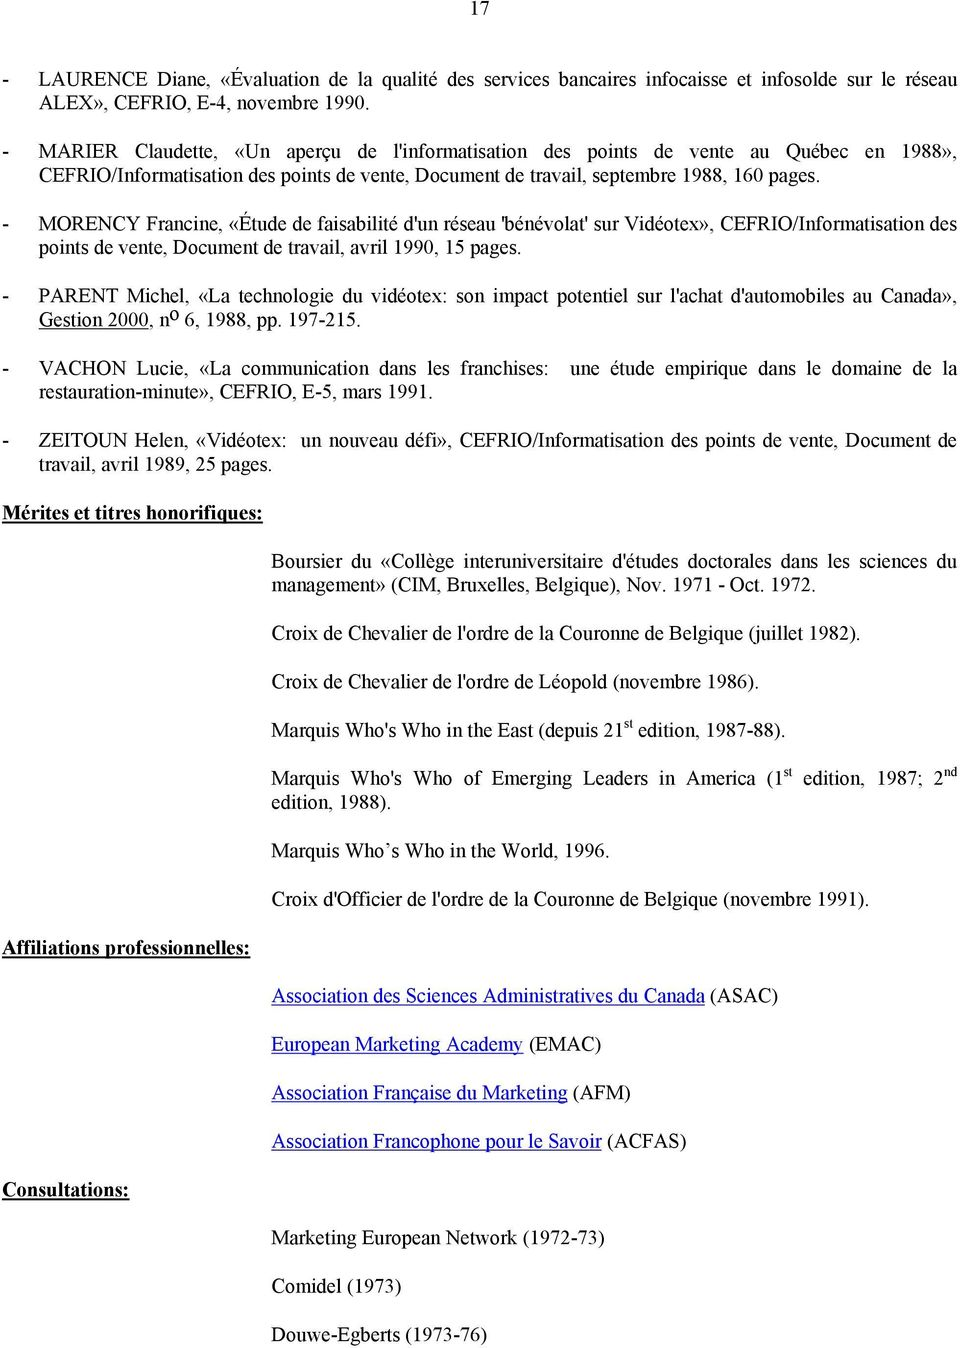 - MORENCY Francine, «Étude de faisabilité d'un réseau 'bénévolat' sur Vidéotex», CEFRIO/Informatisation des points de vente, Document de travail, avril 1990, 15 pages.